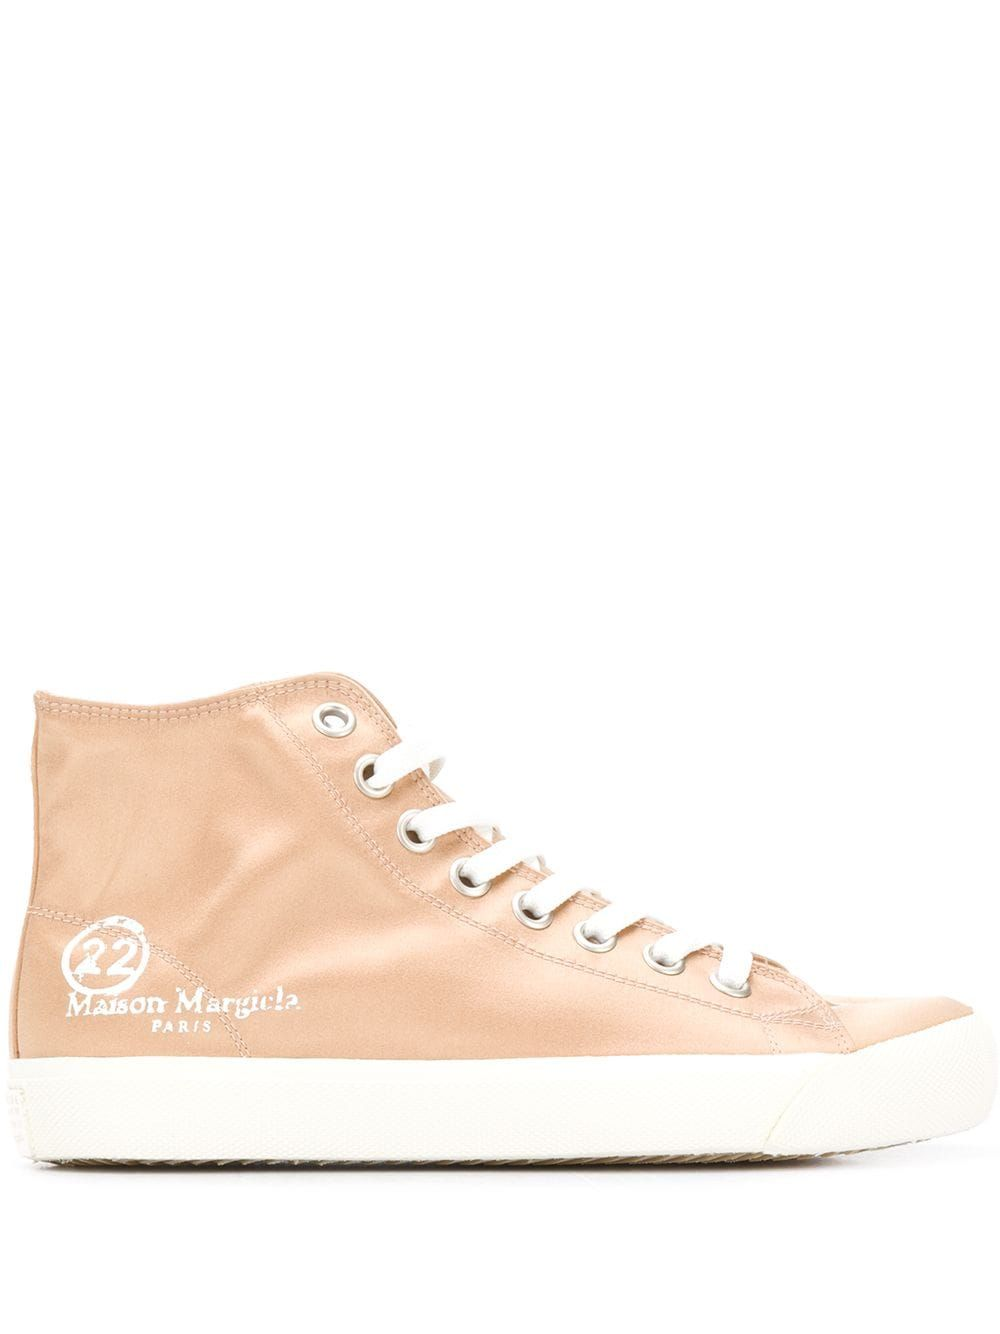 Maison Margiela MAISON MARGIELA WOMEN'S S58WS0111PR189T4091 PINK LEATHER HI TOP SNEAKERS